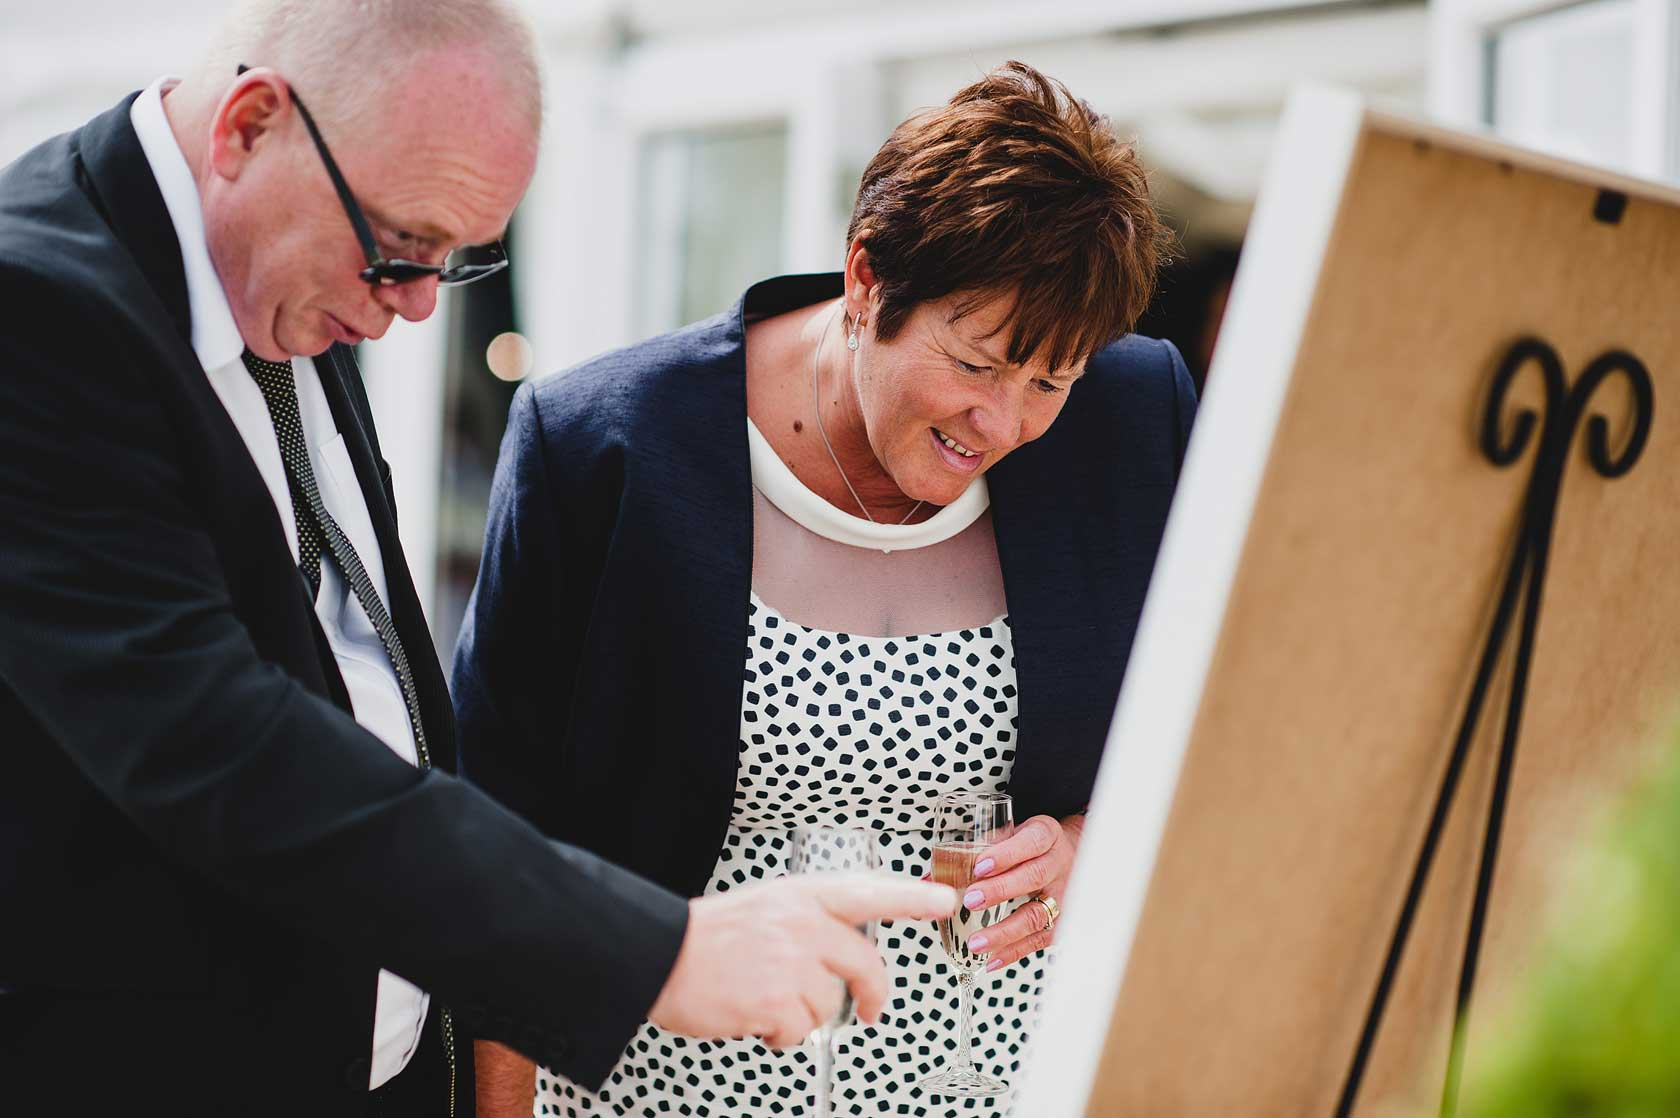 Reportage Wedding Photography at Osmaston Park